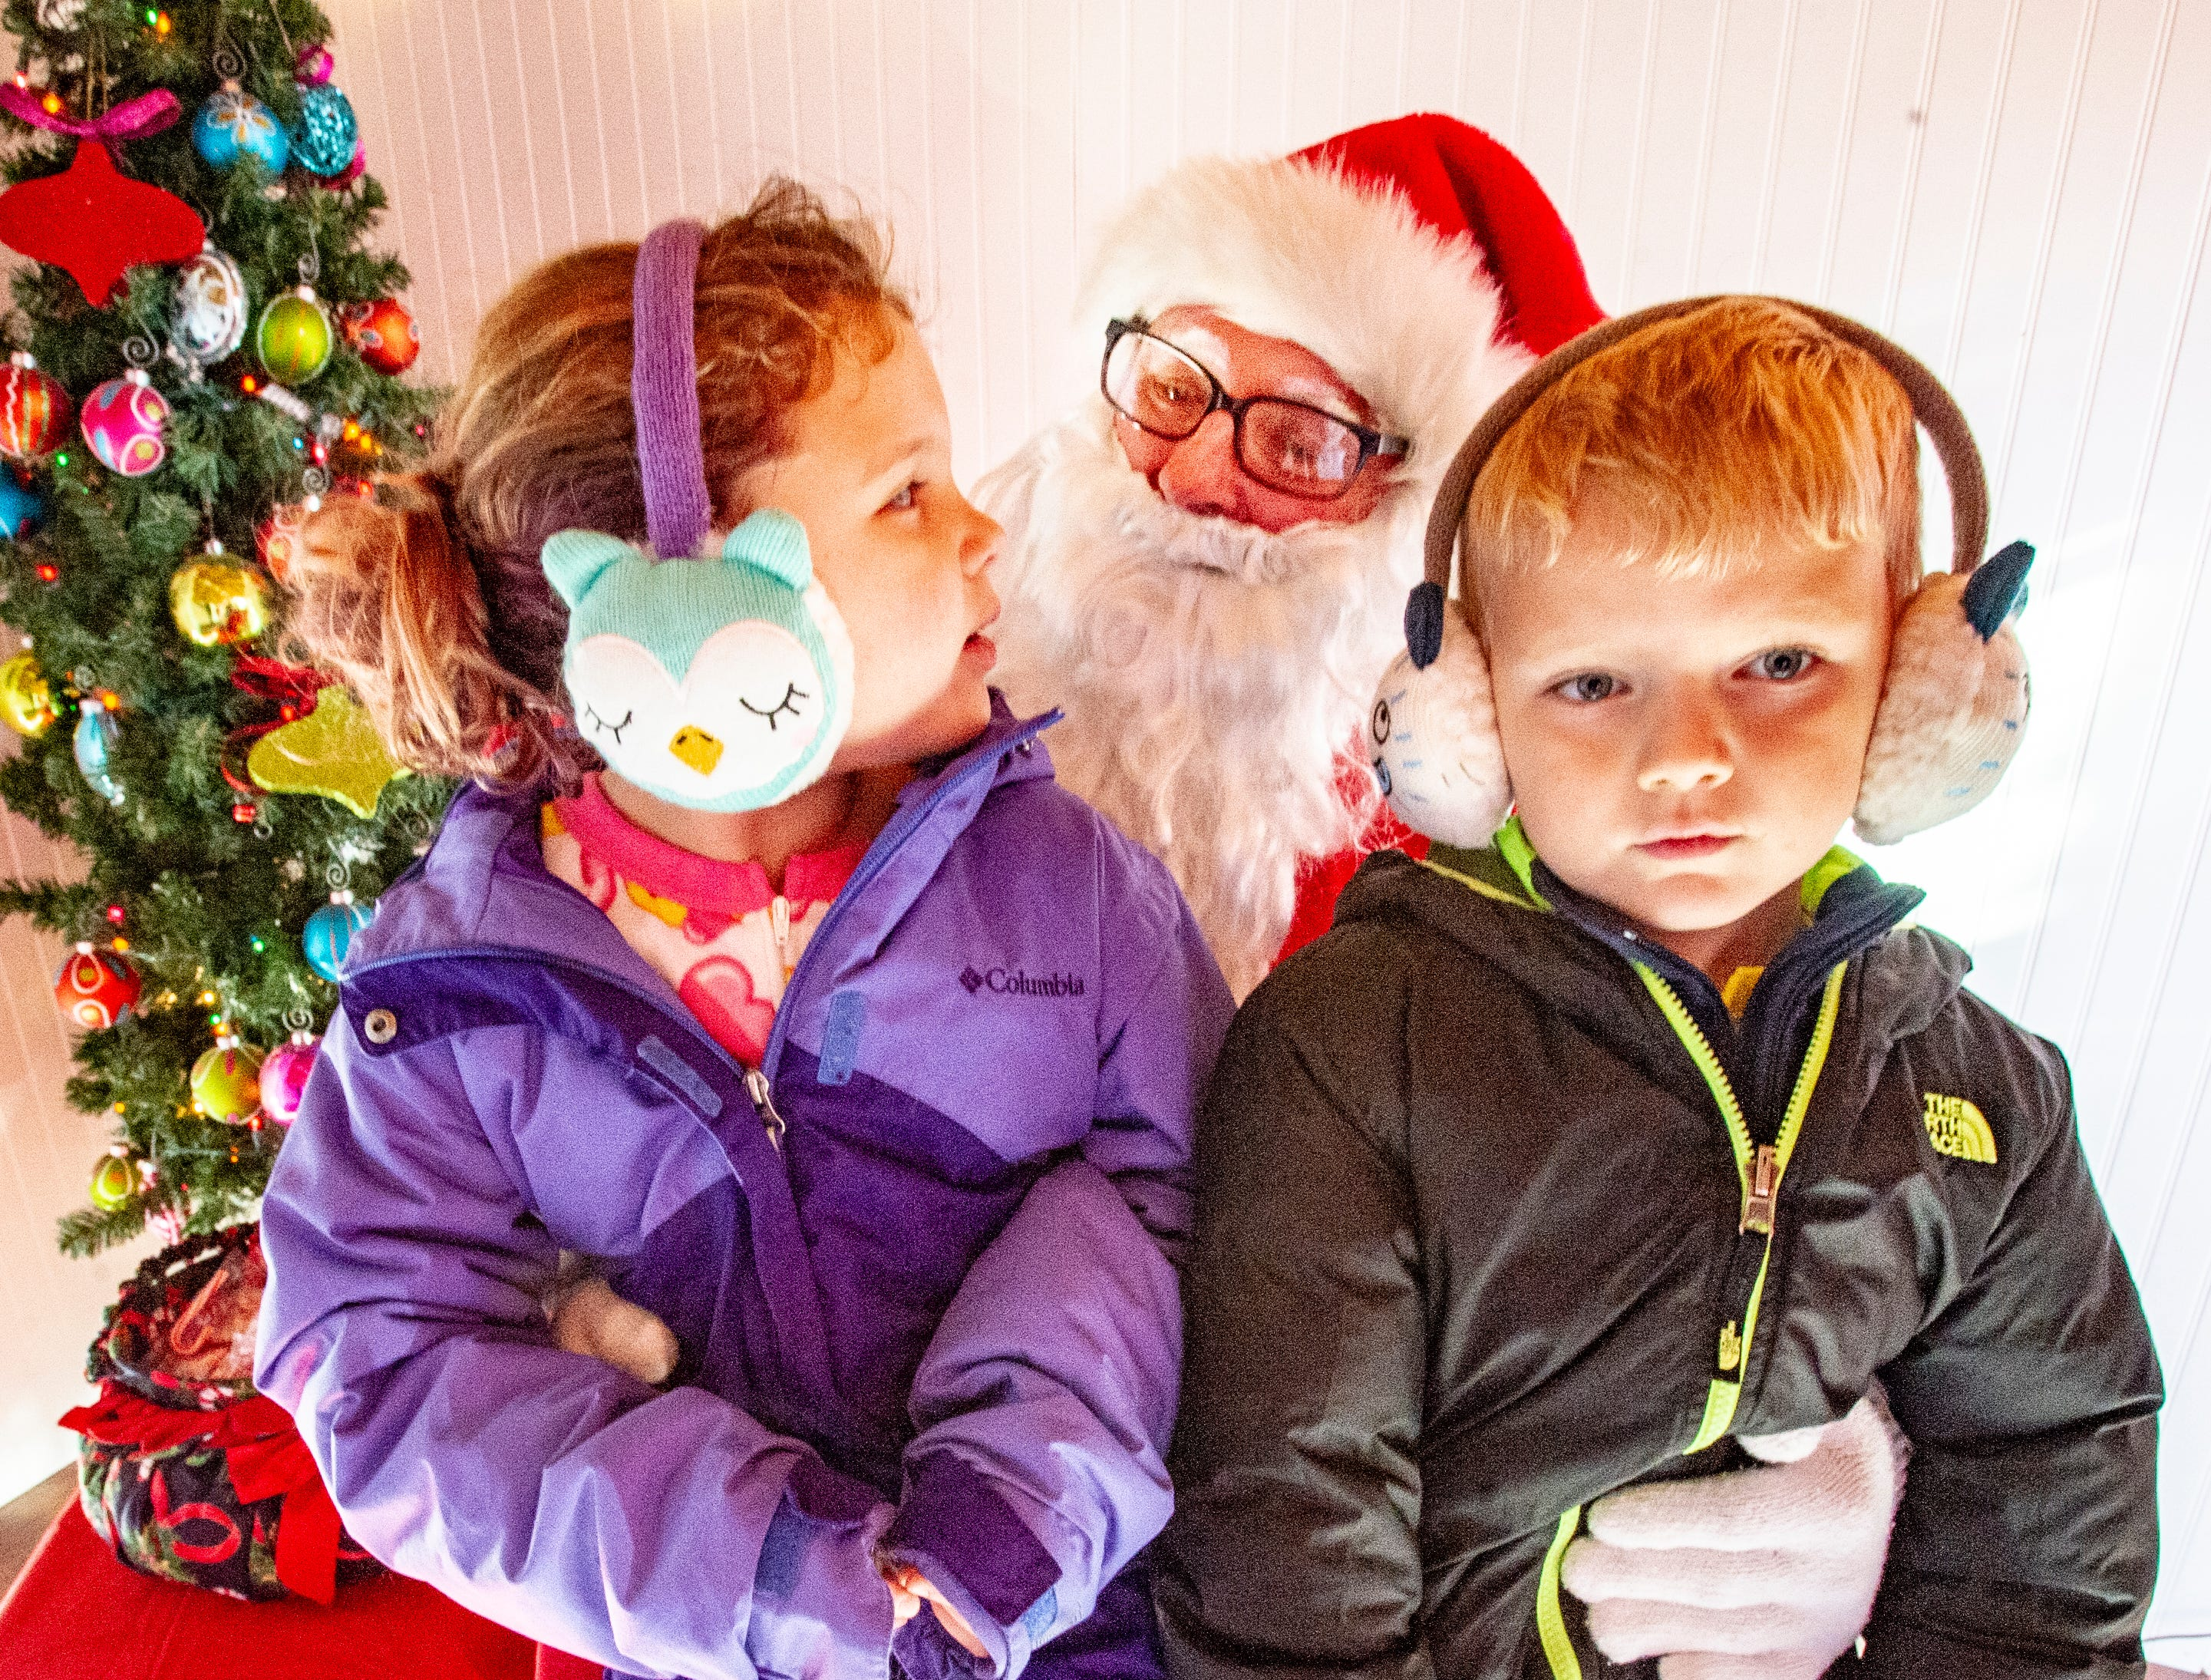 Jemma McAlexander, 8, and her brother Noah, 6, visit with Santa about the gift wish list. They are the children of Cortney and David McAlexander of Indianola. The two children met Santa at the Santa House in downtown Indianola Nov. 24, 2018.